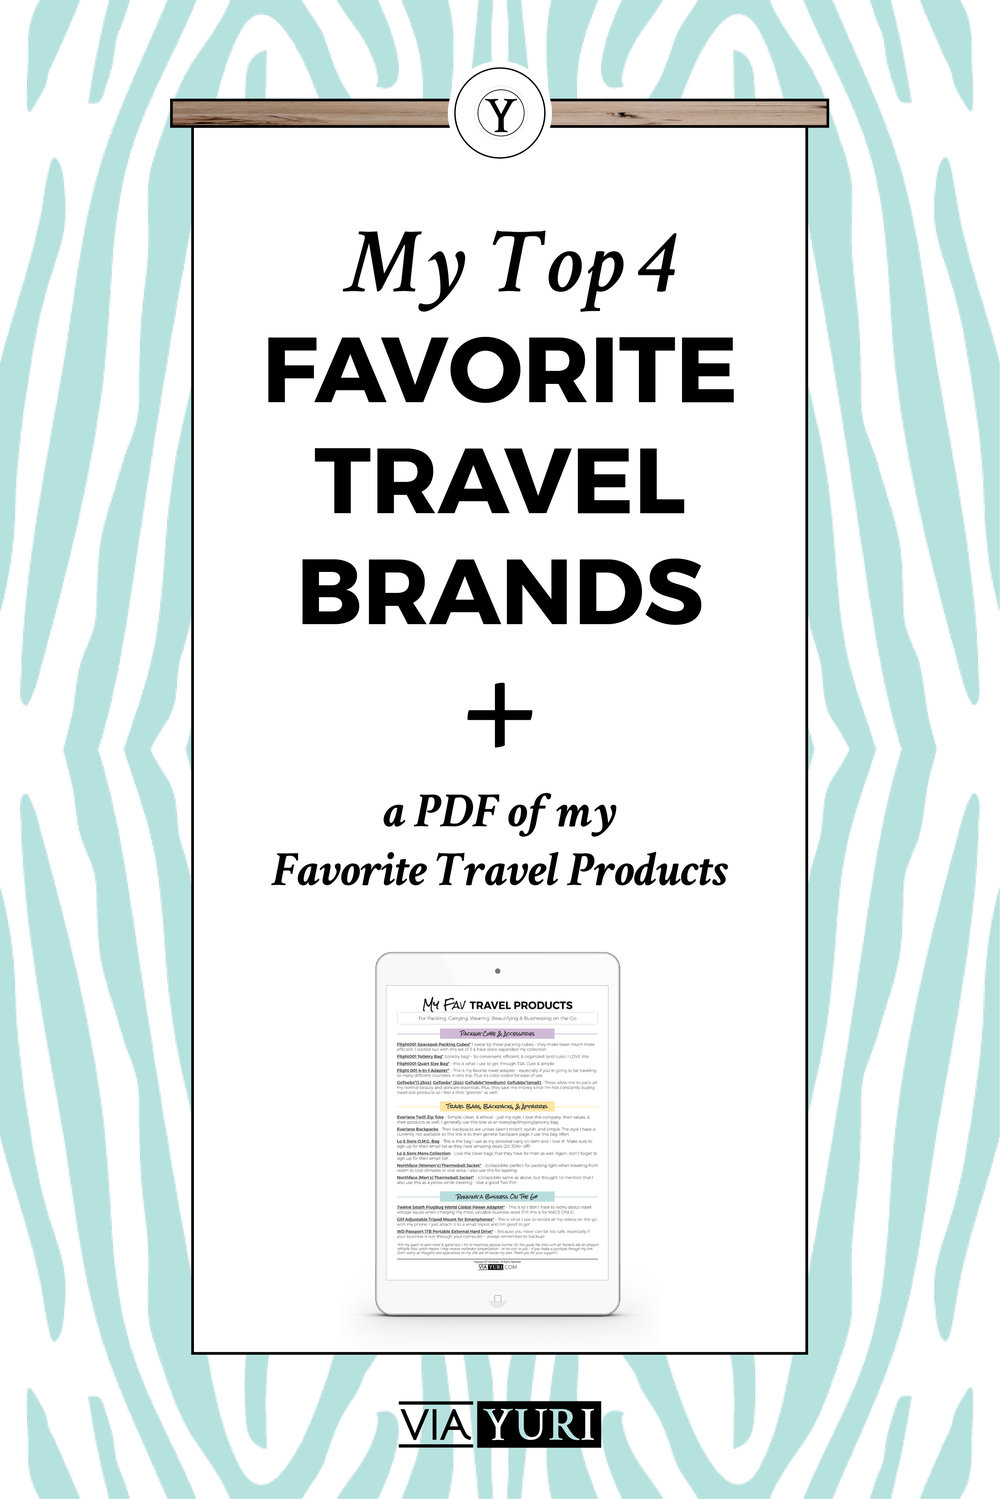 My Top 4 Favorite Travel Brands - aka the Brands & Products that I feel are worth the hype & money | viaYuri.com